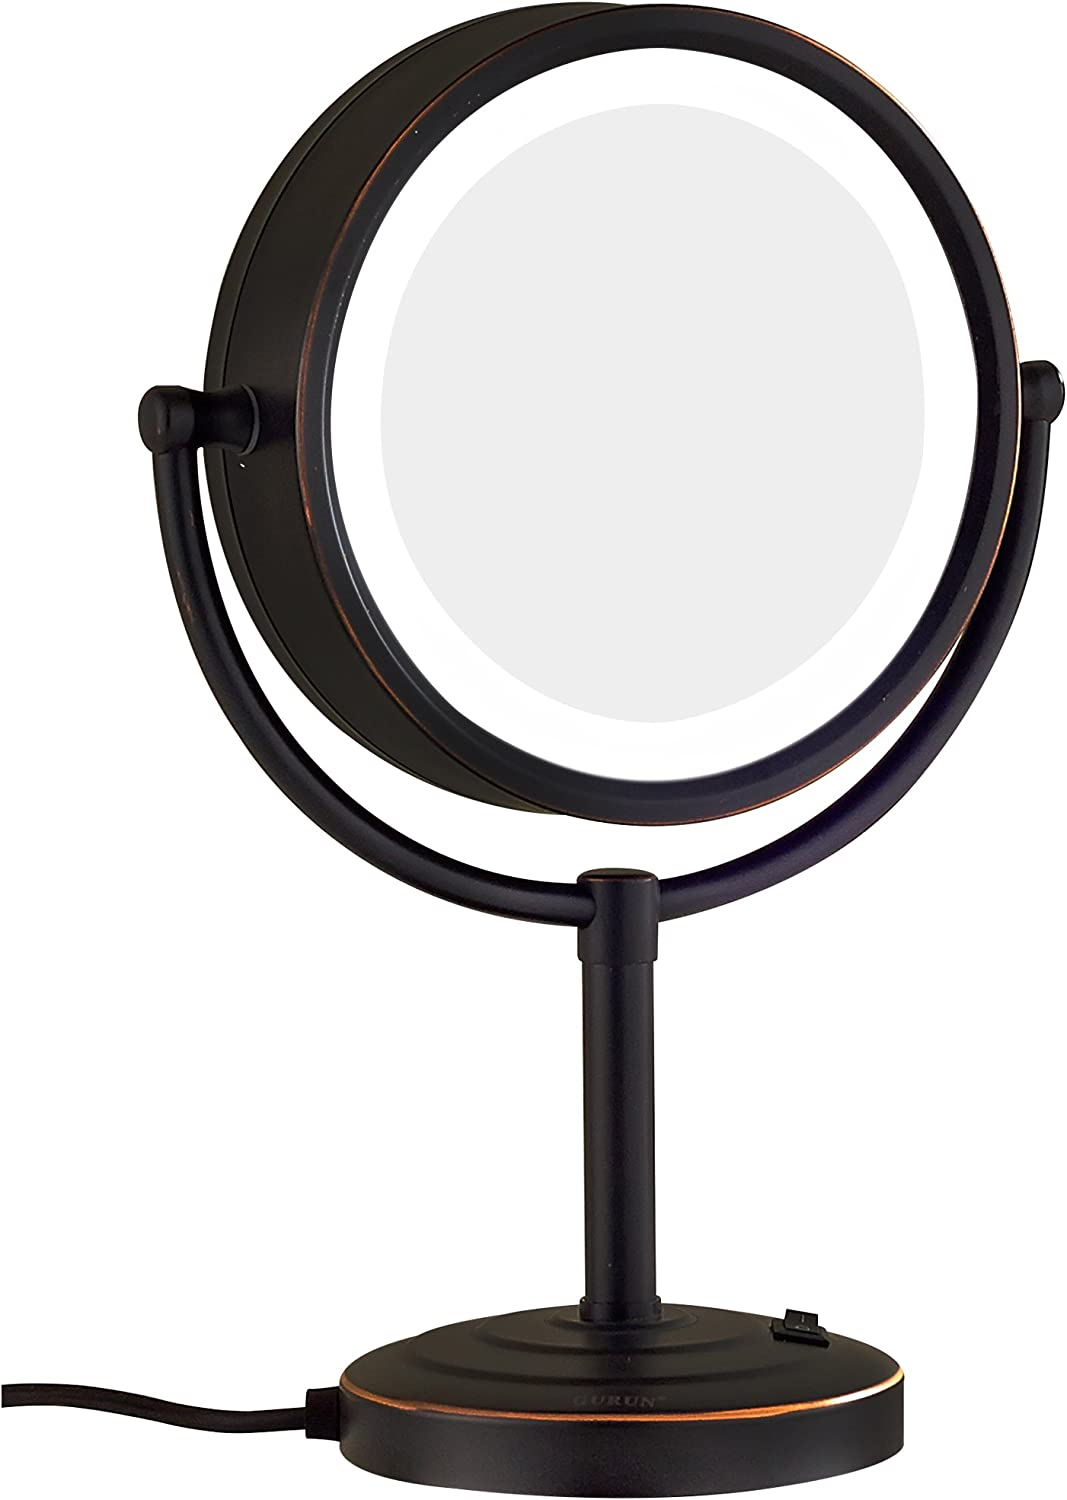 GuRun 8.5-Inch Tabletop Double-Sided LED Lighted Makeup Mirror with 10x Magnification,Oil-Rubbed Bronze M2208DO(8.5in,10x)